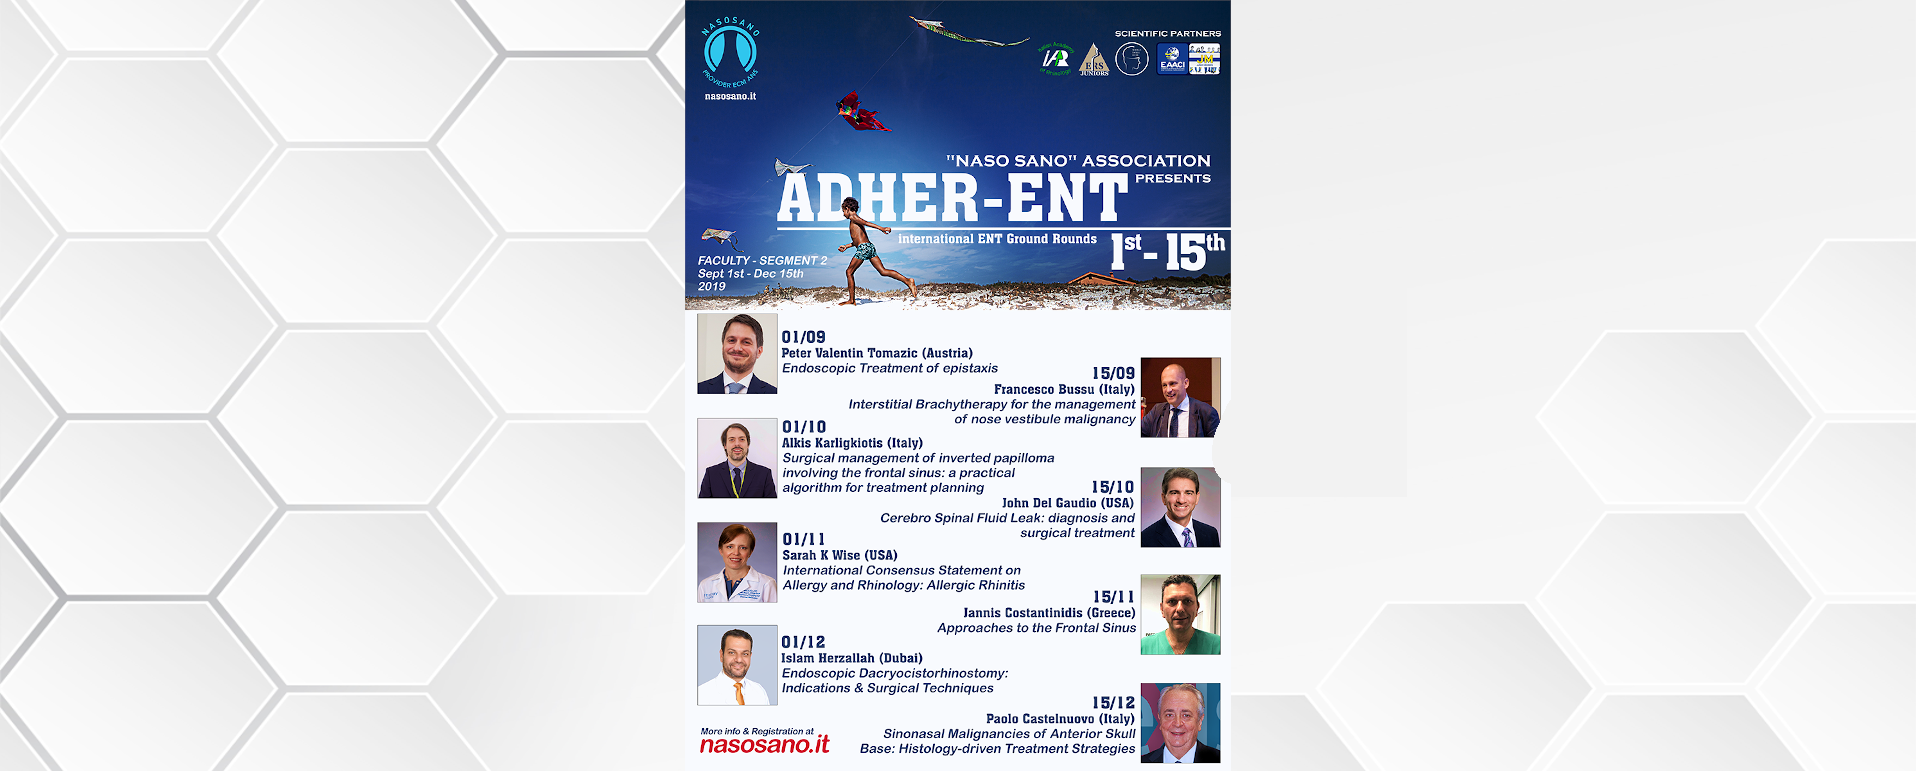 Adher-Ent